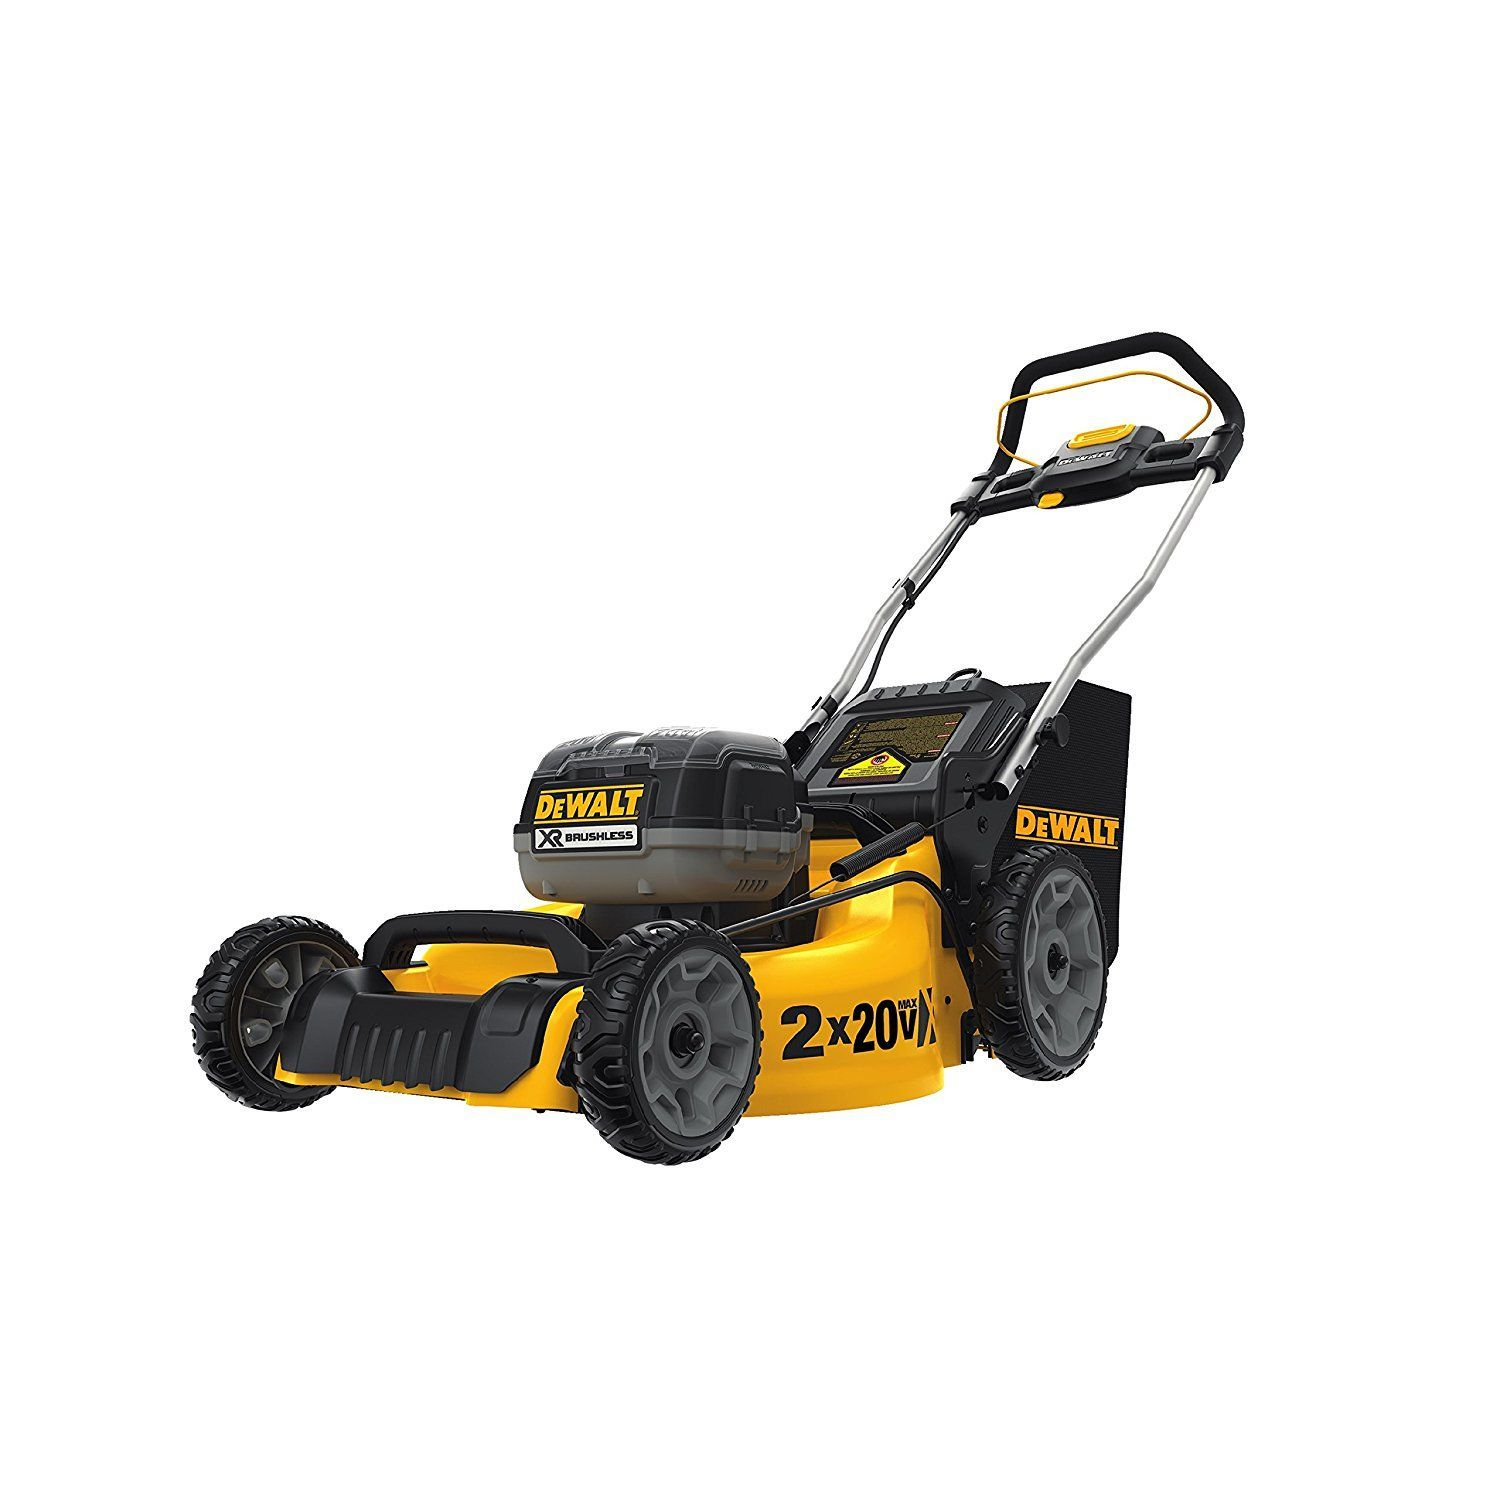 Best Cordless Lawn Mower 2021 Best Push Lawn Mower 2021   Buyer's Guide | Best lawn mower